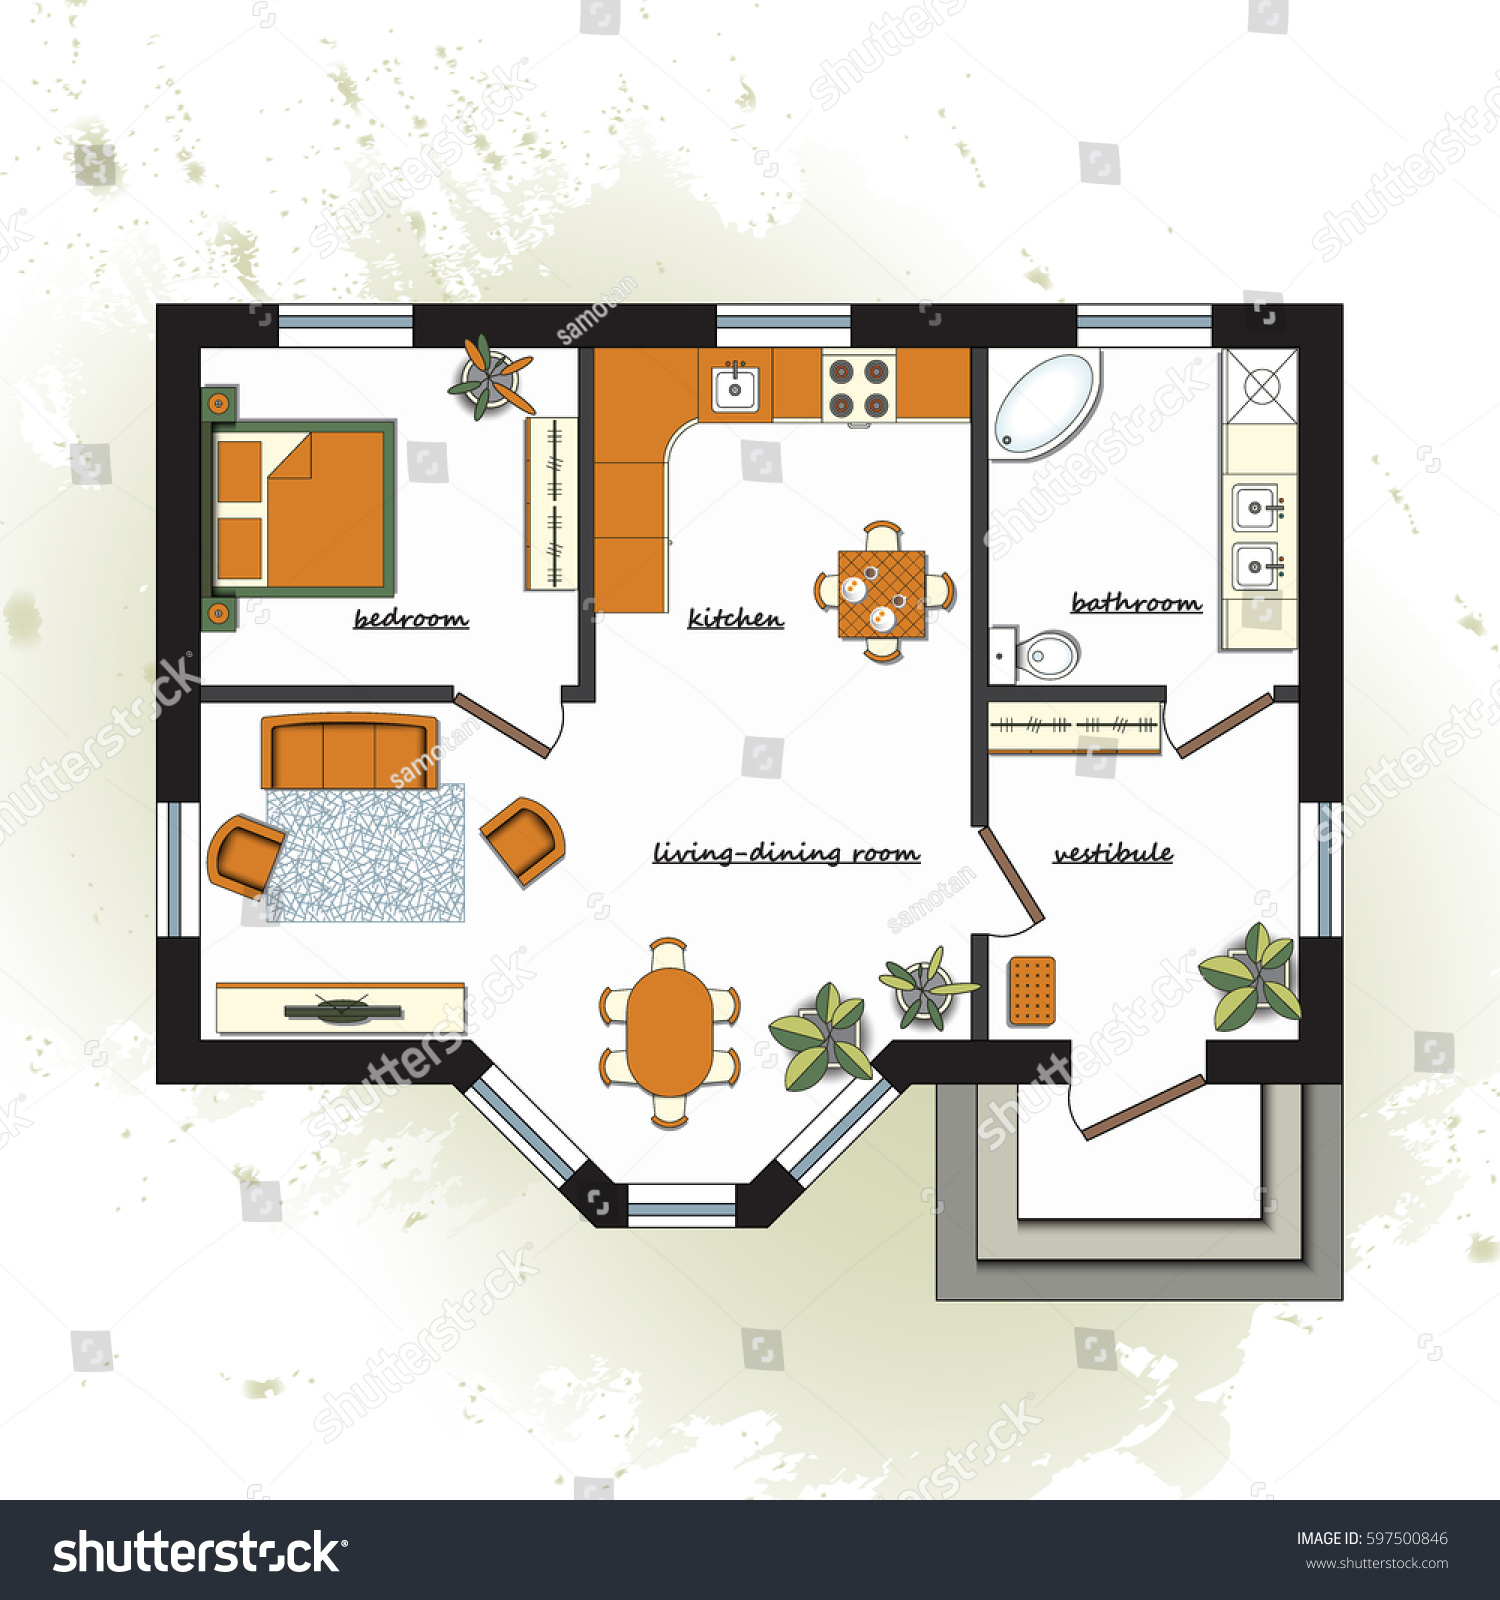 architectural color floor plan furniture top stock vector